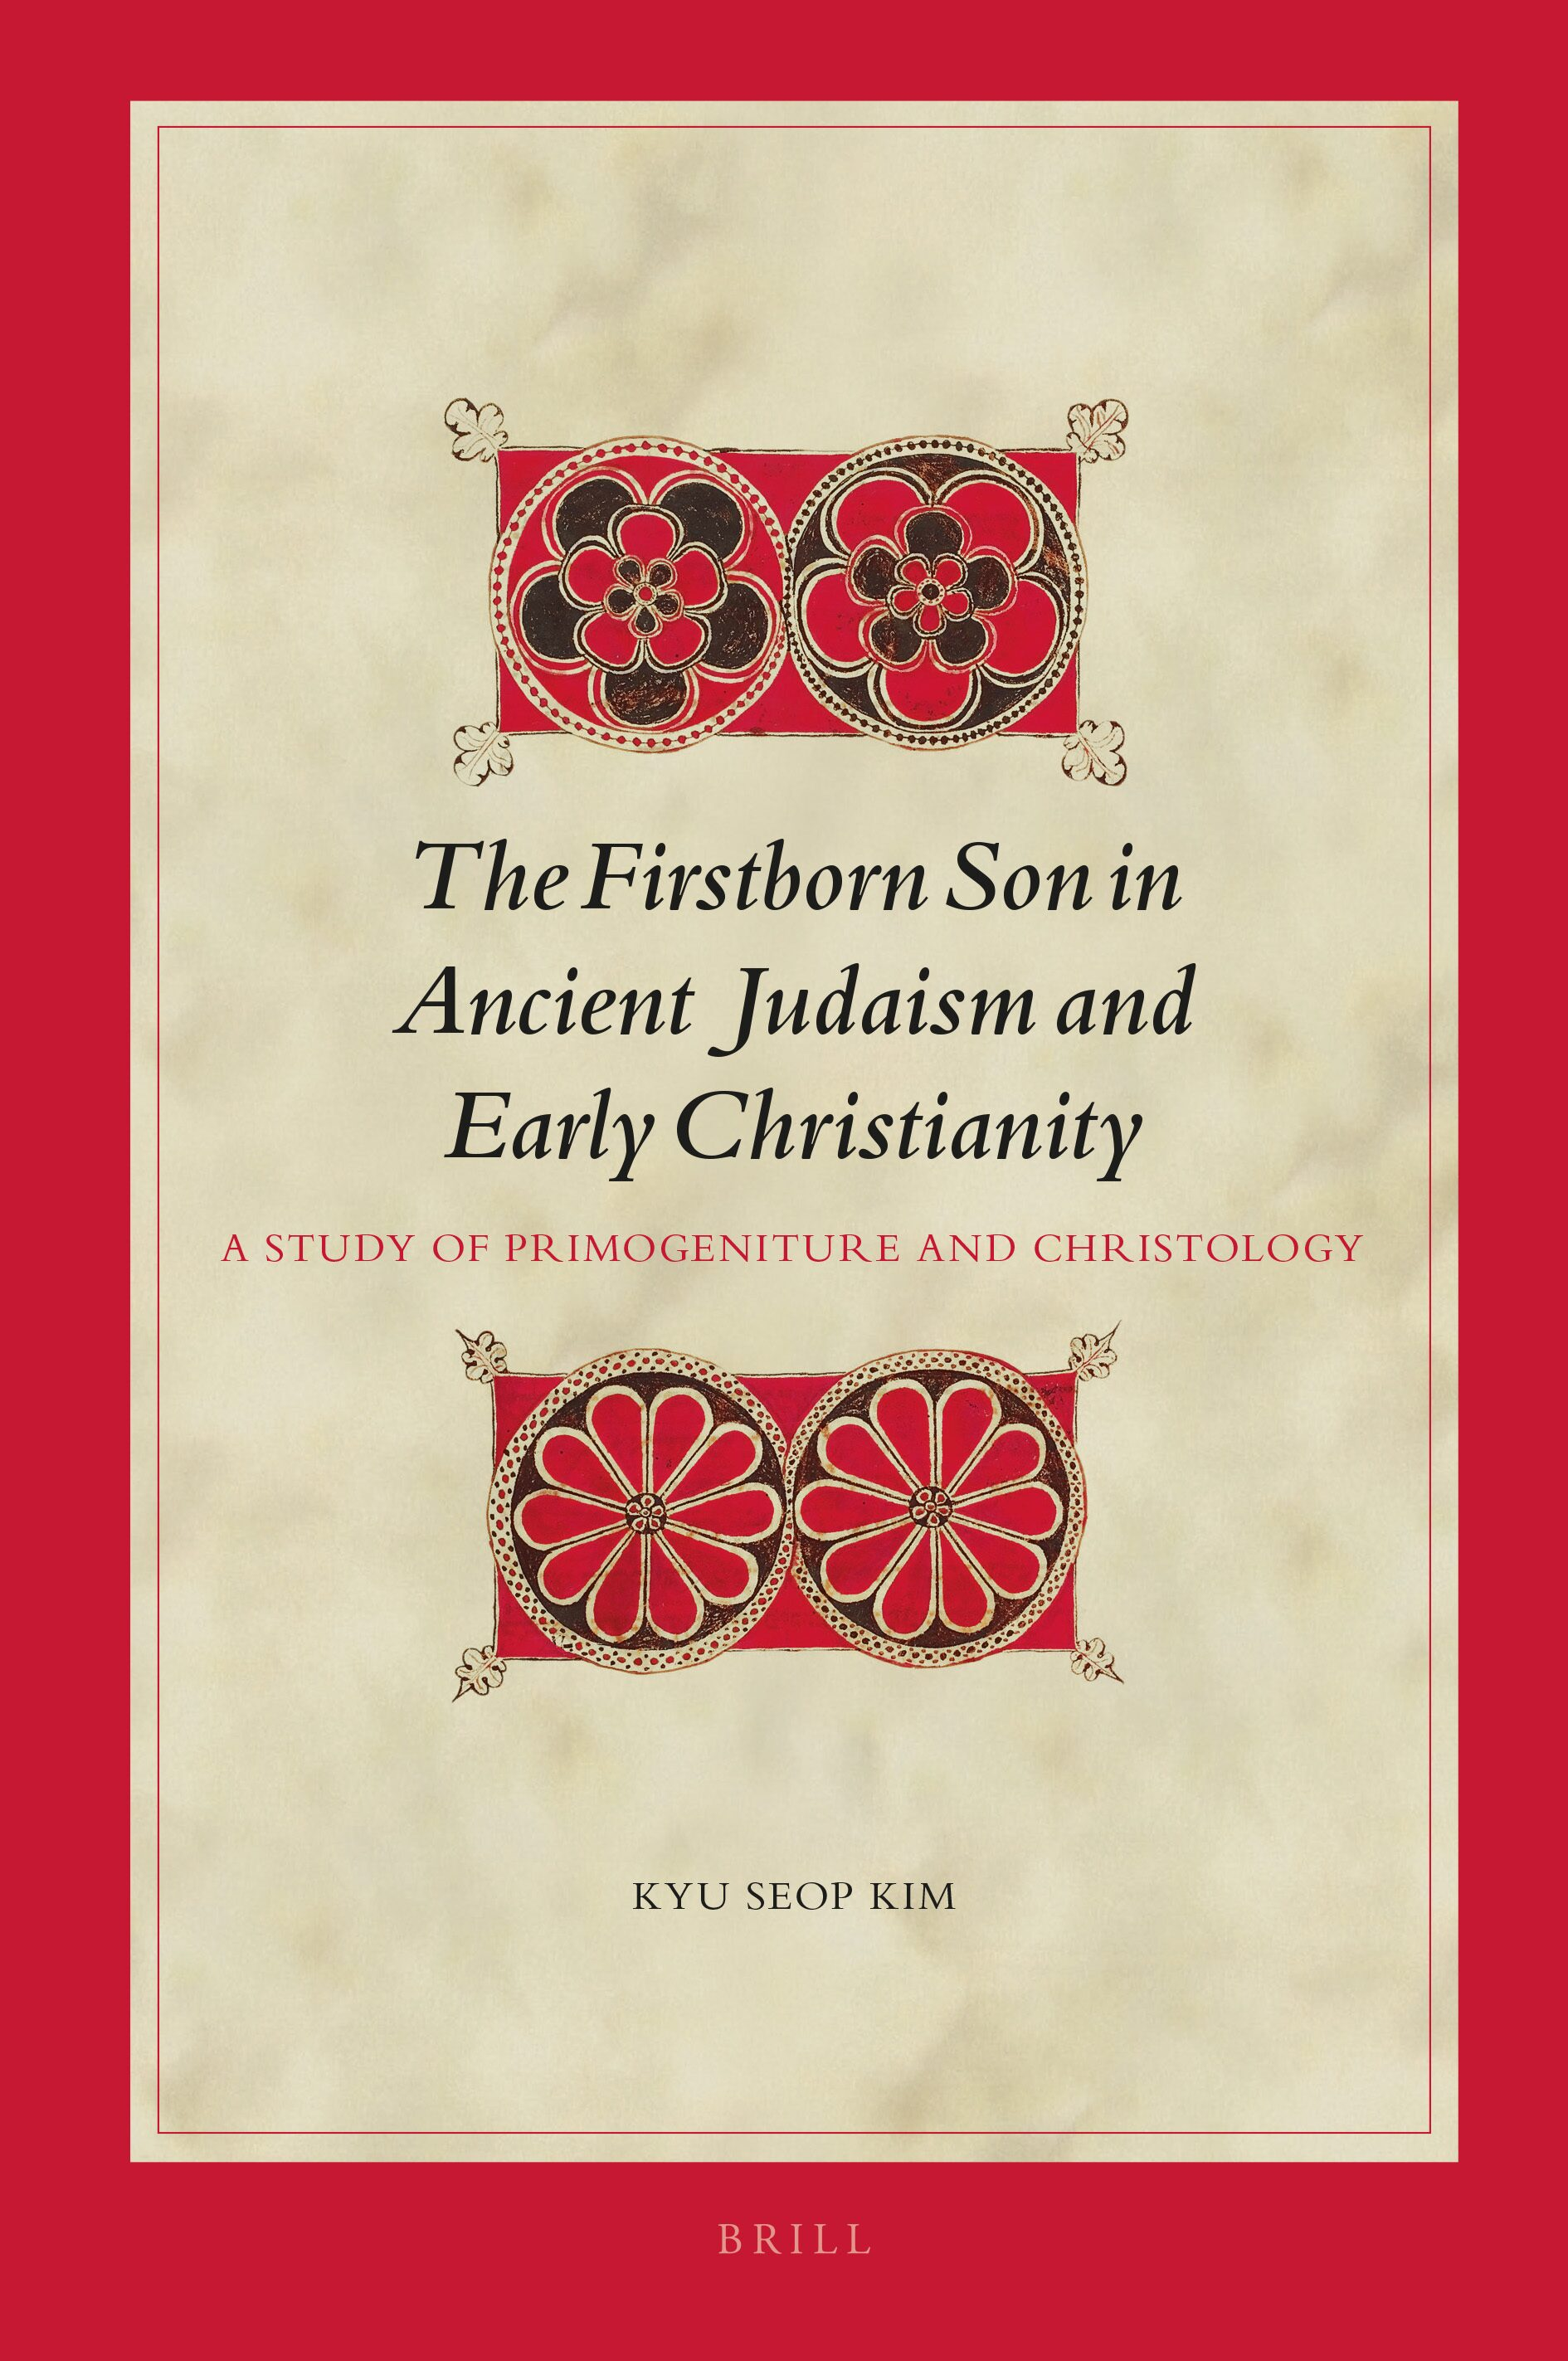 The Firstborn Son as Self-Perception of Israel in: The